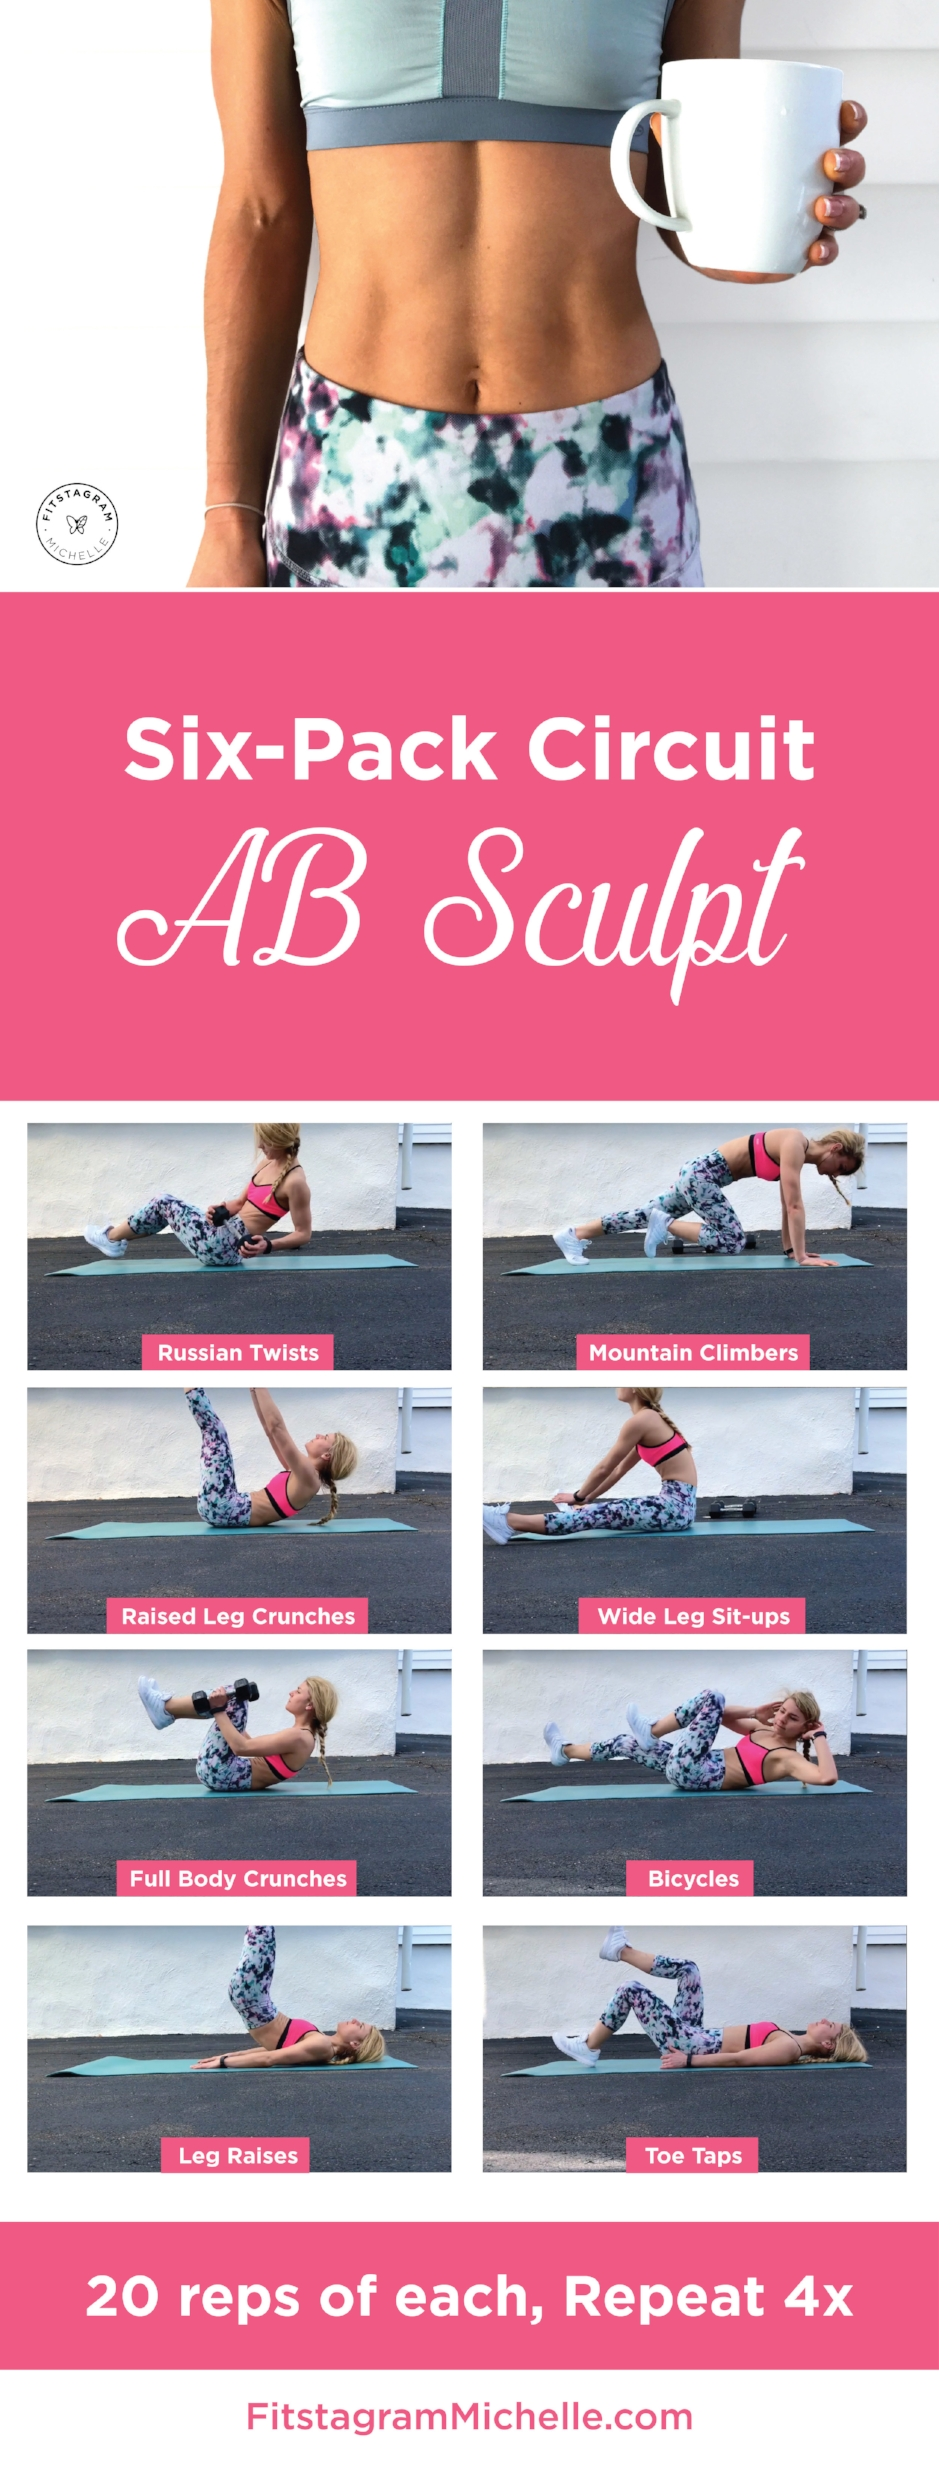 Six-pack Ab Sculpt Circuit. Try this workout with just 8 moves to get you tight and toned.